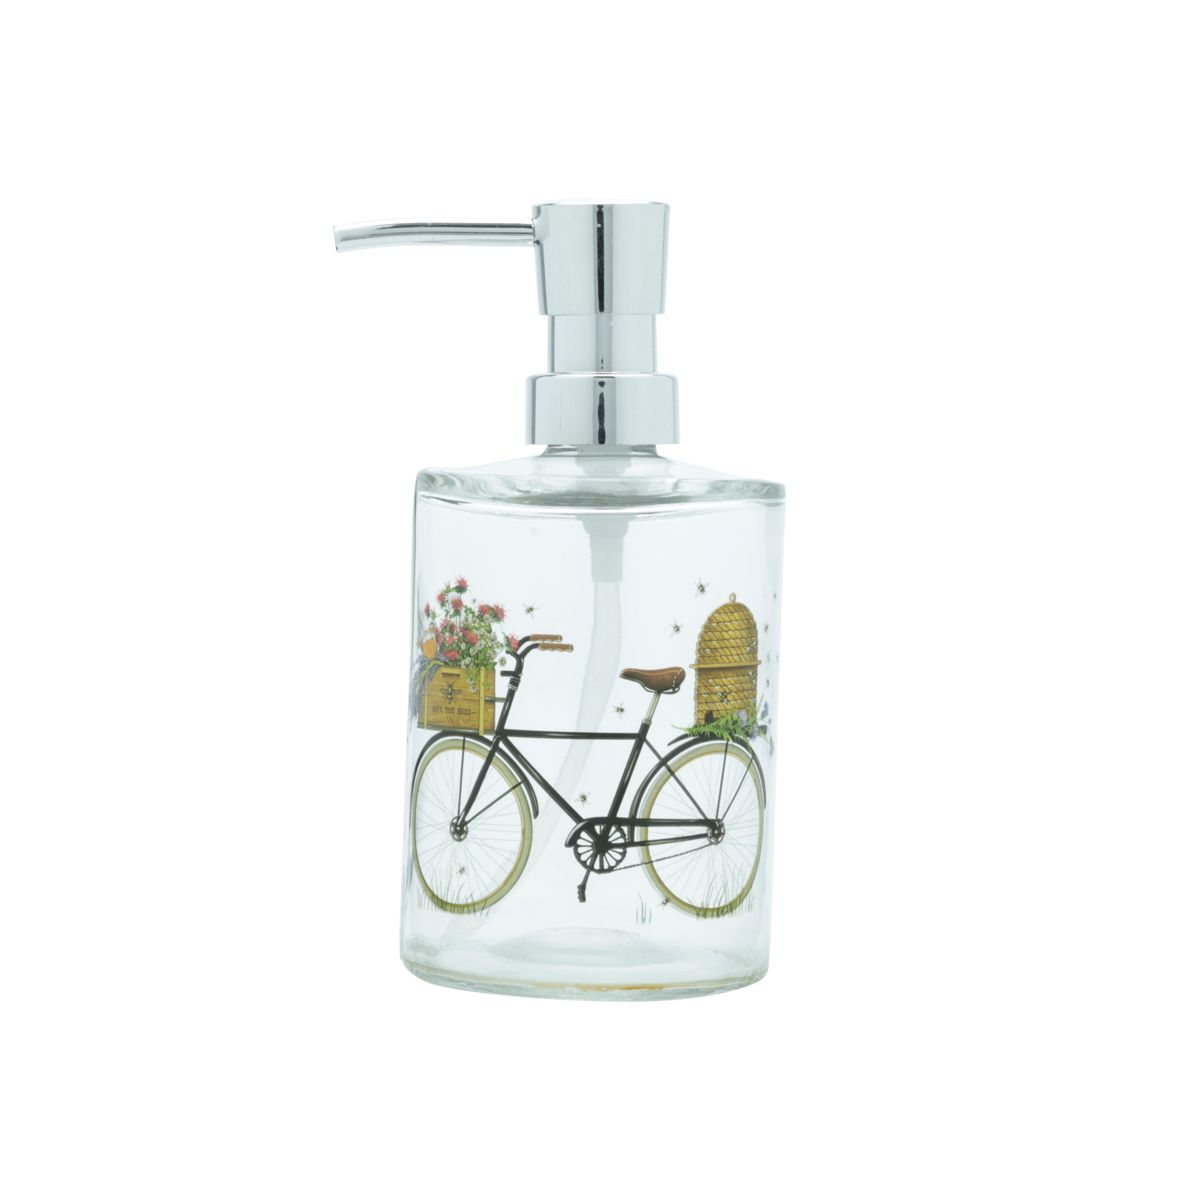 Porta Sabonete Líquido de Vidro Bike And Flower 400ml